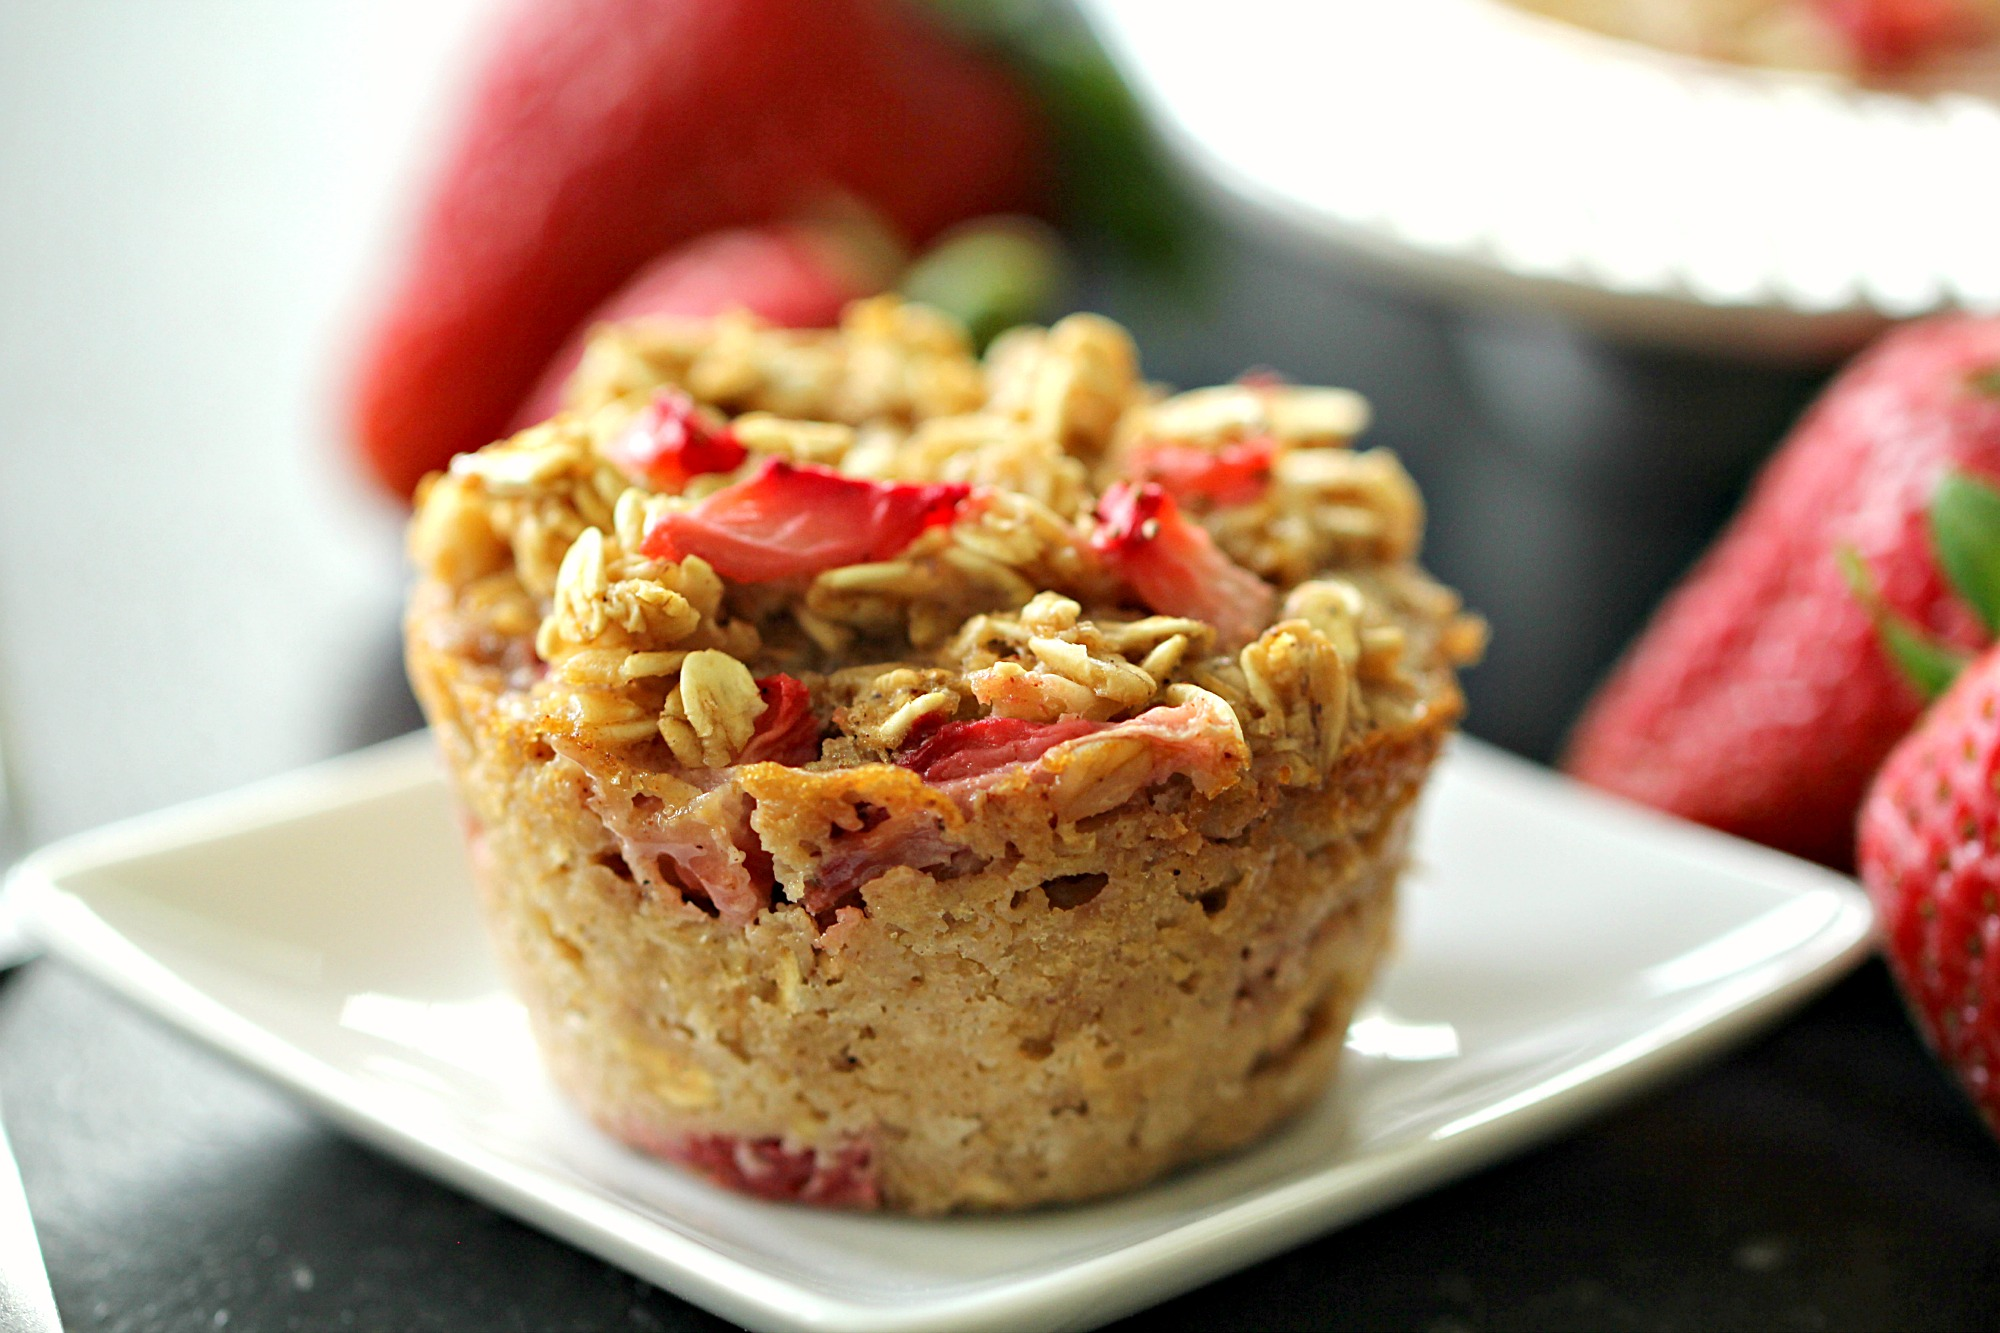 single baked oatmeal muffin cup topped with strawberries on a white plate